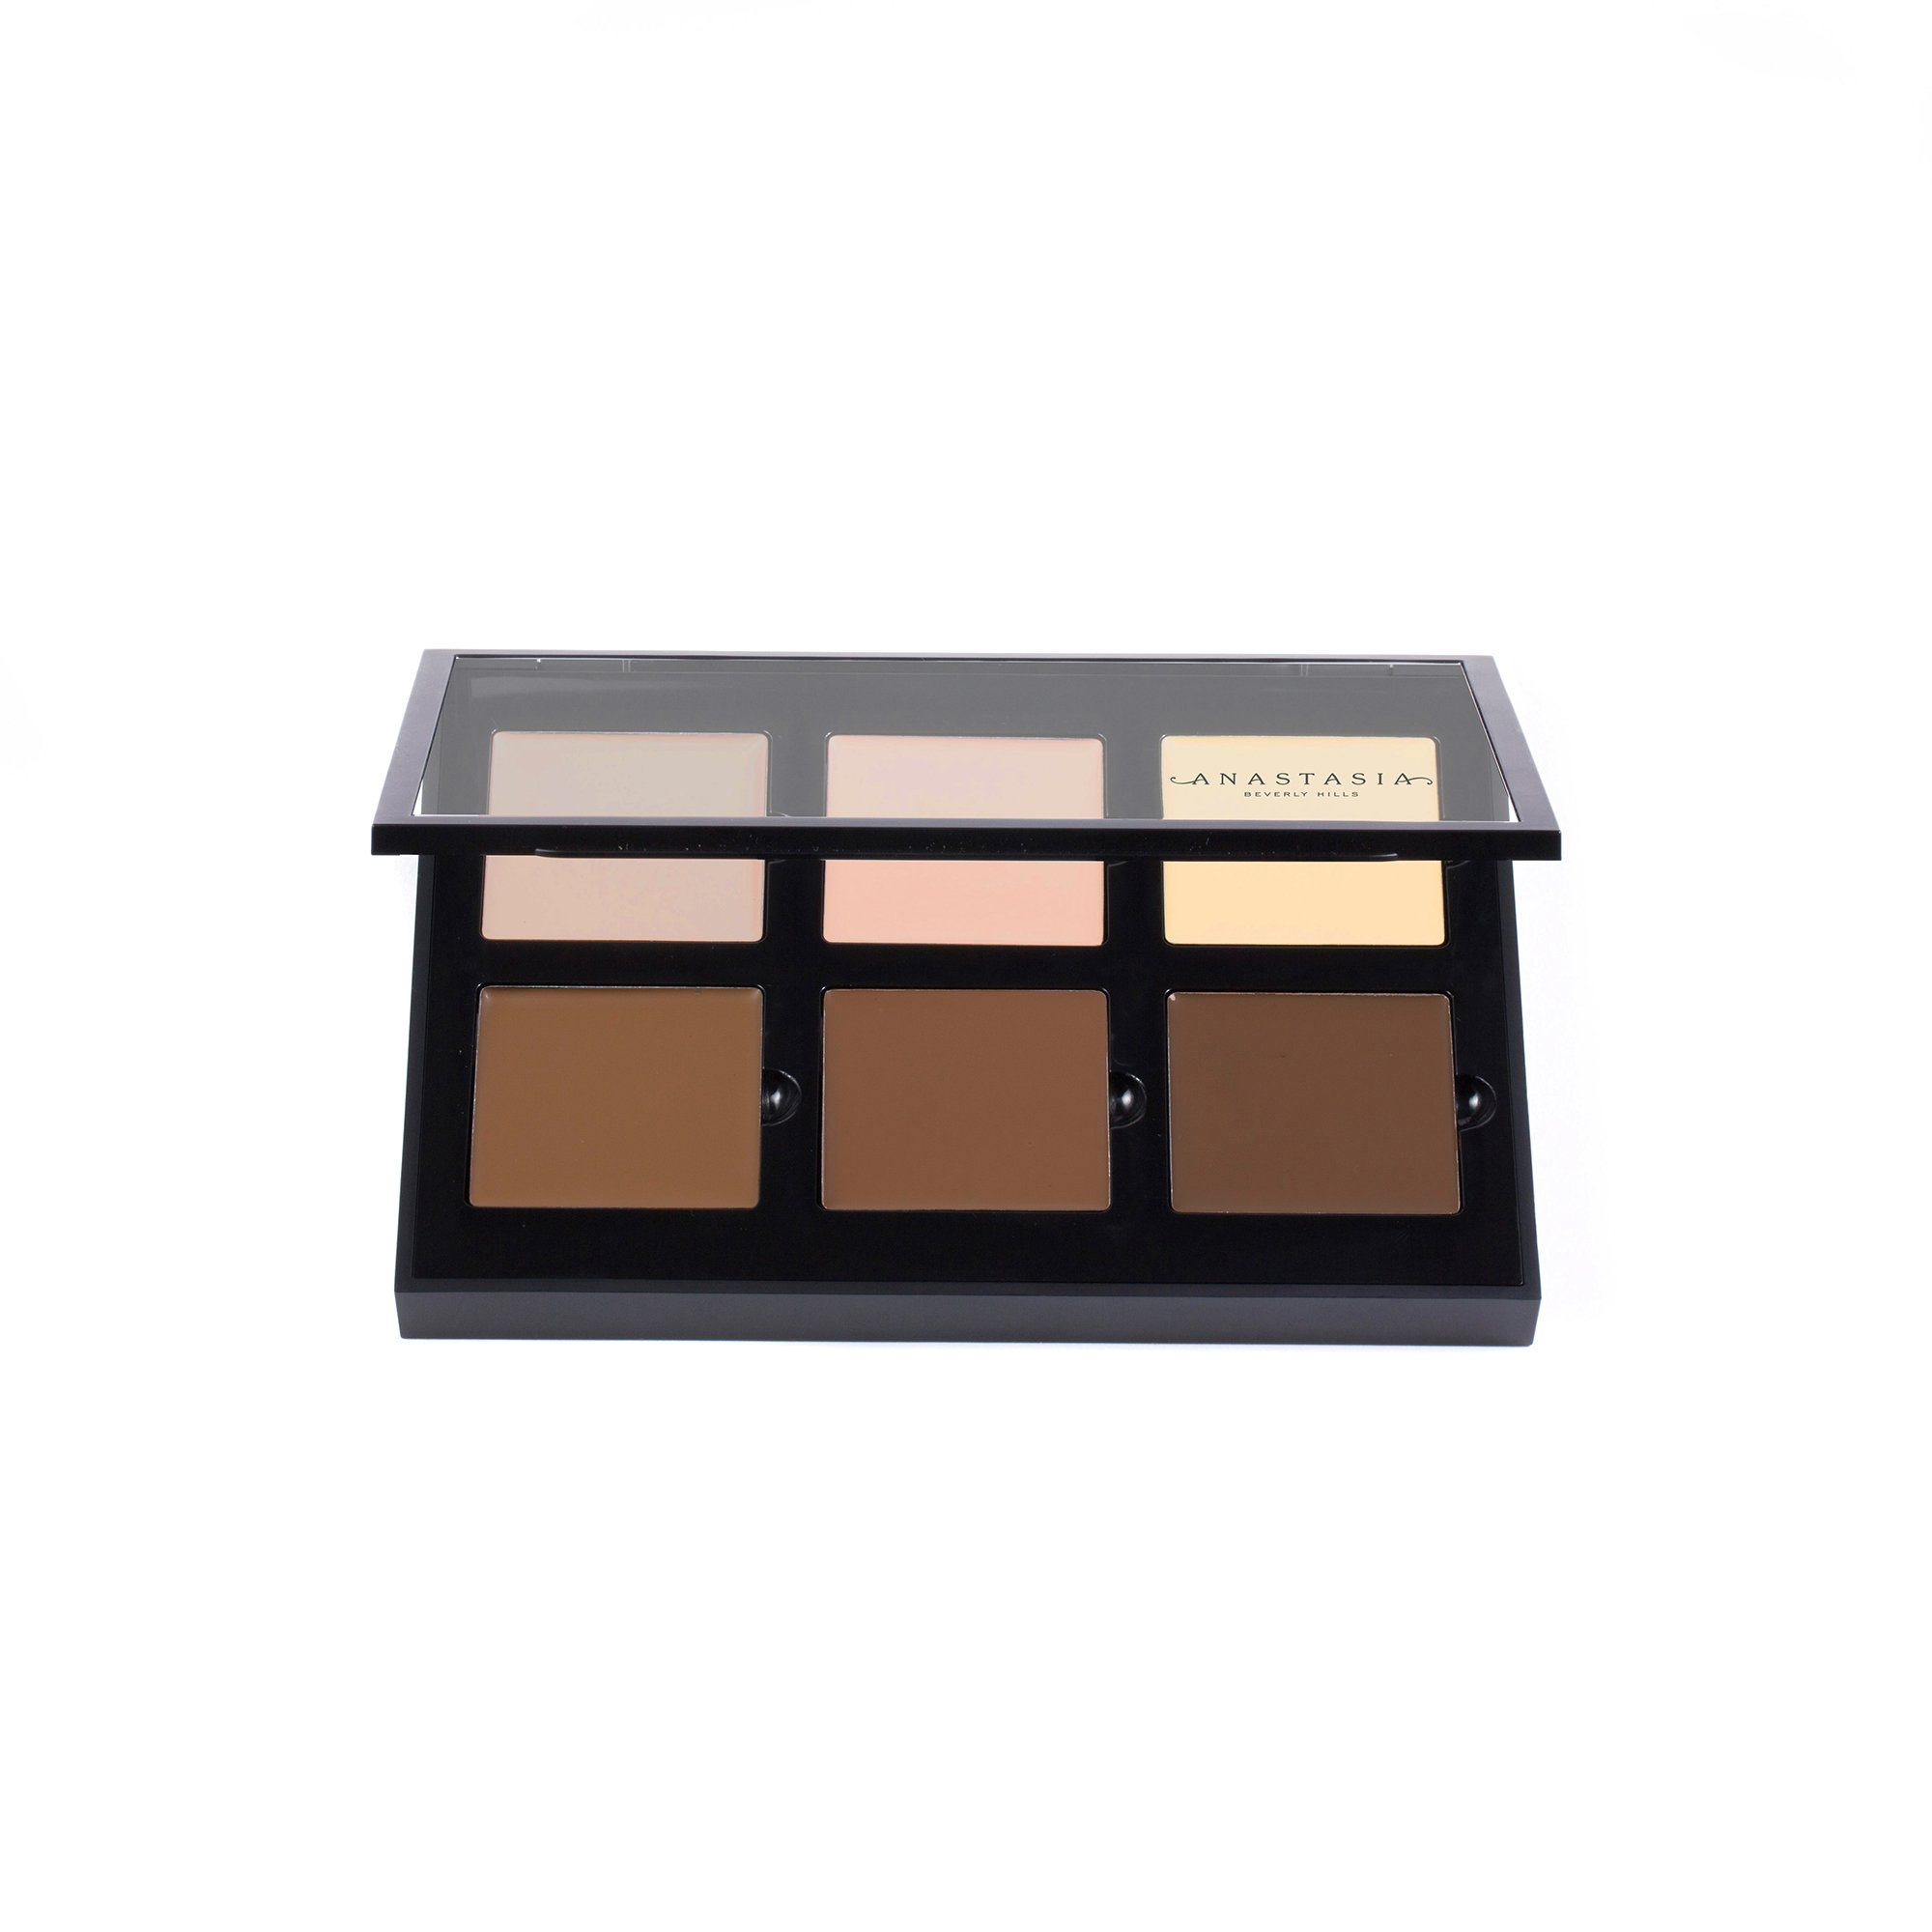 Anastasia Beverly Hills Contour Cream Kit (Light). 6-Shade Highlight and Contour Palette for Light Skin Tones